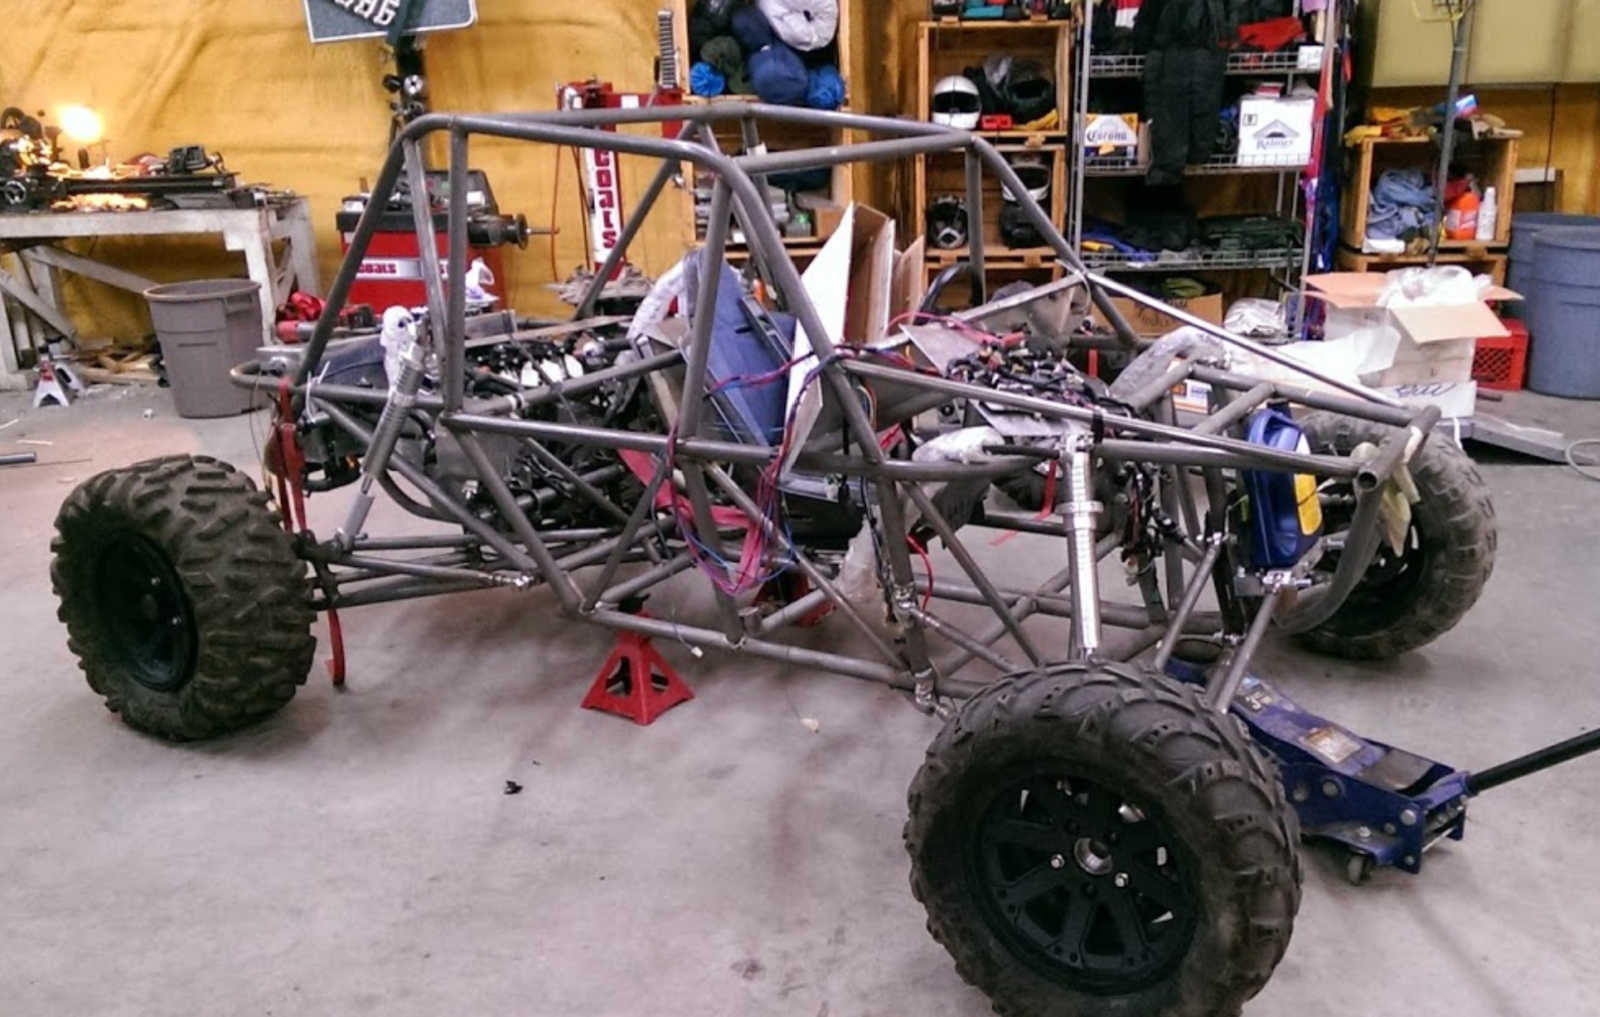 Mini Buggy or Prerunner, Which Would You Rather? | race-deZert